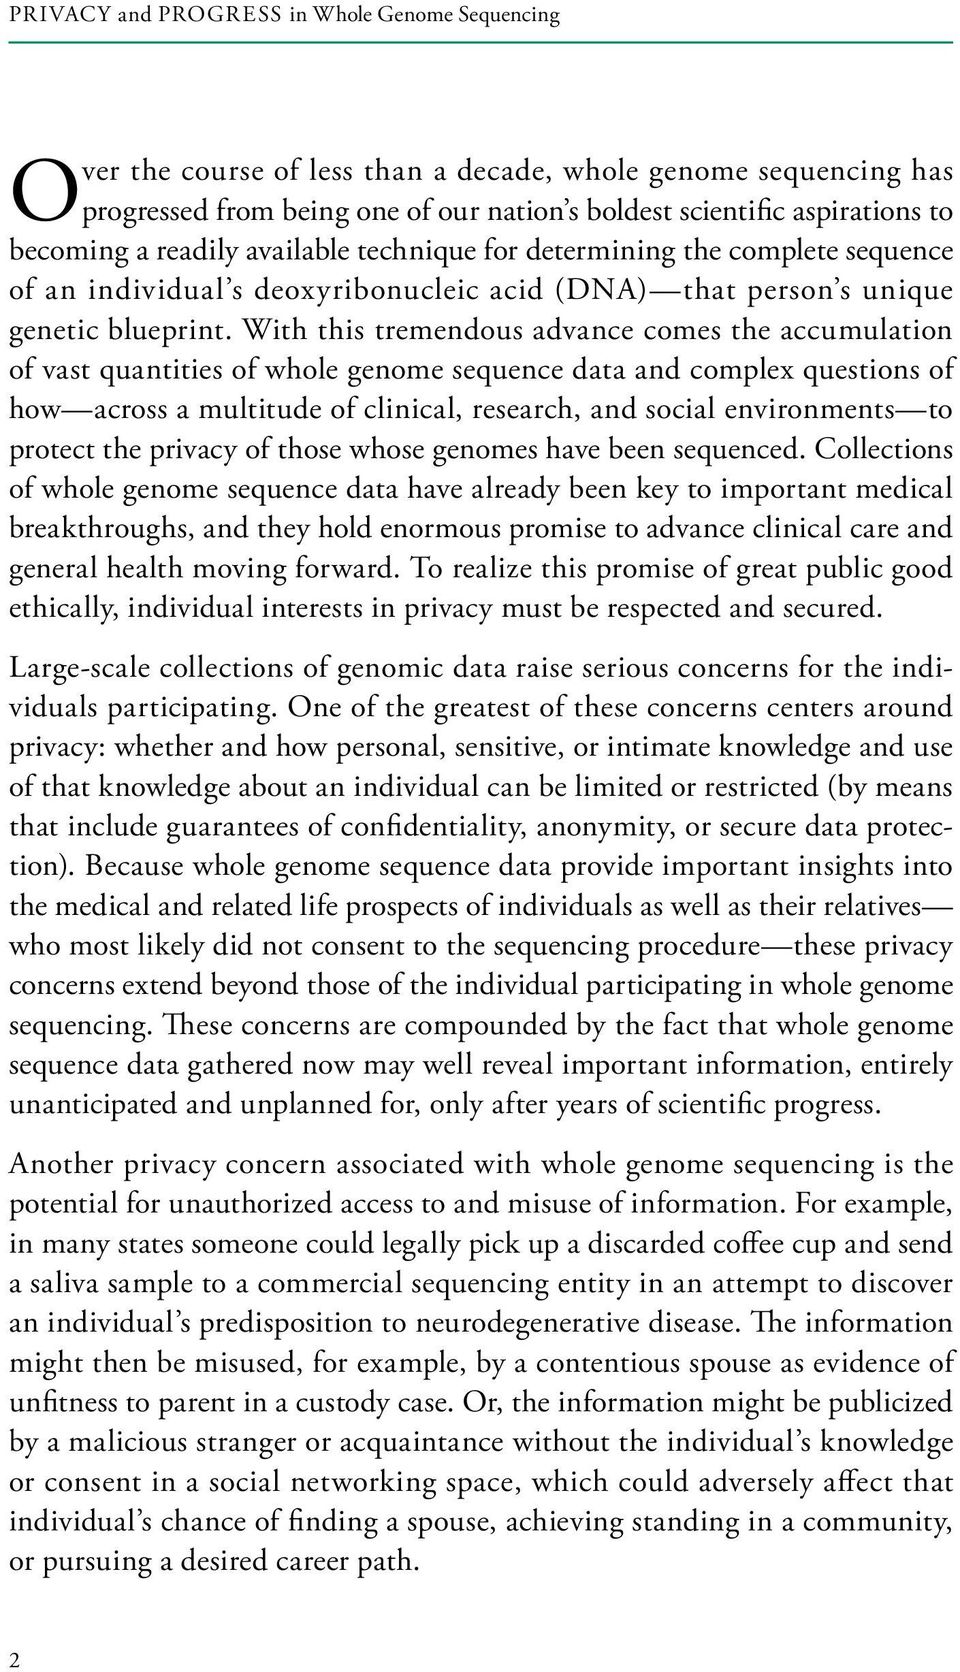 With this tremendous advance comes the accumulation of vast quantities of whole genome sequence data and complex questions of how across a multitude of clinical, research, and social environments to